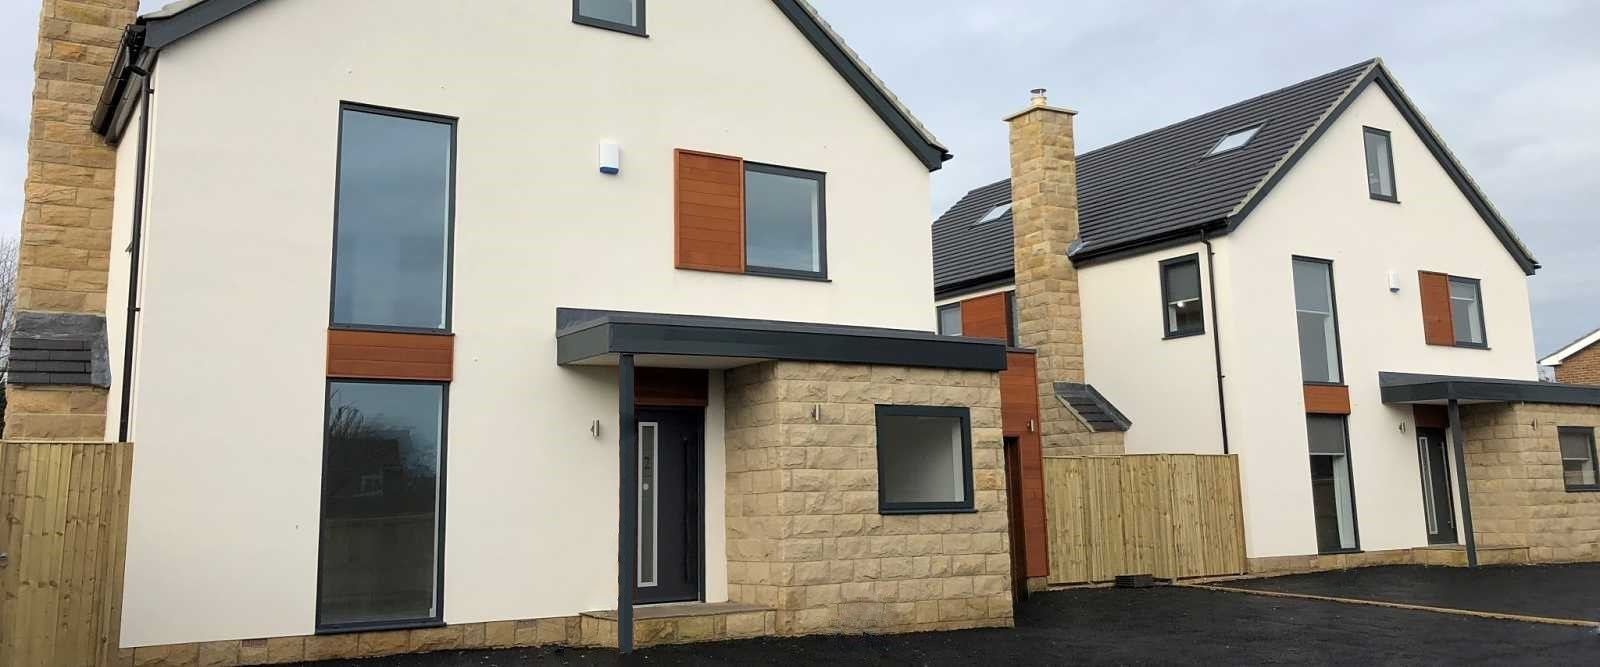 Contemporary tilt turn aluminium windows at shadwell near leeds